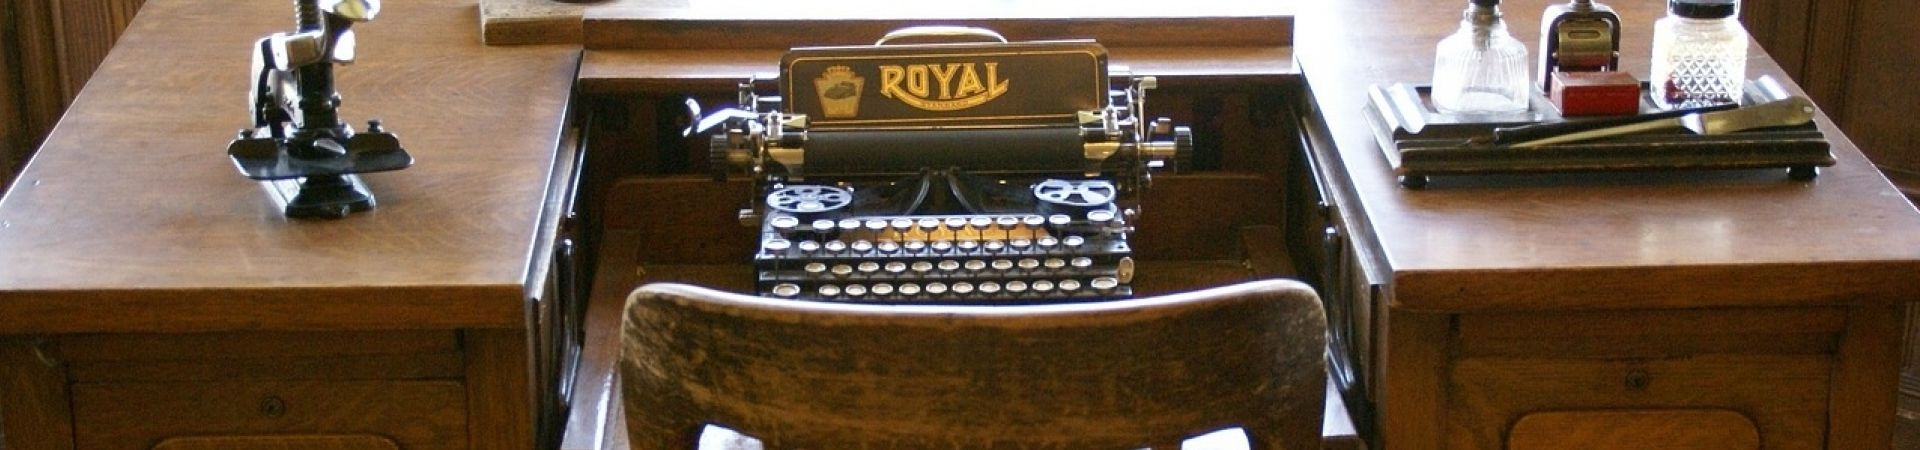 Typing-typewriter-vintage-antique-desk-typewriter-663487